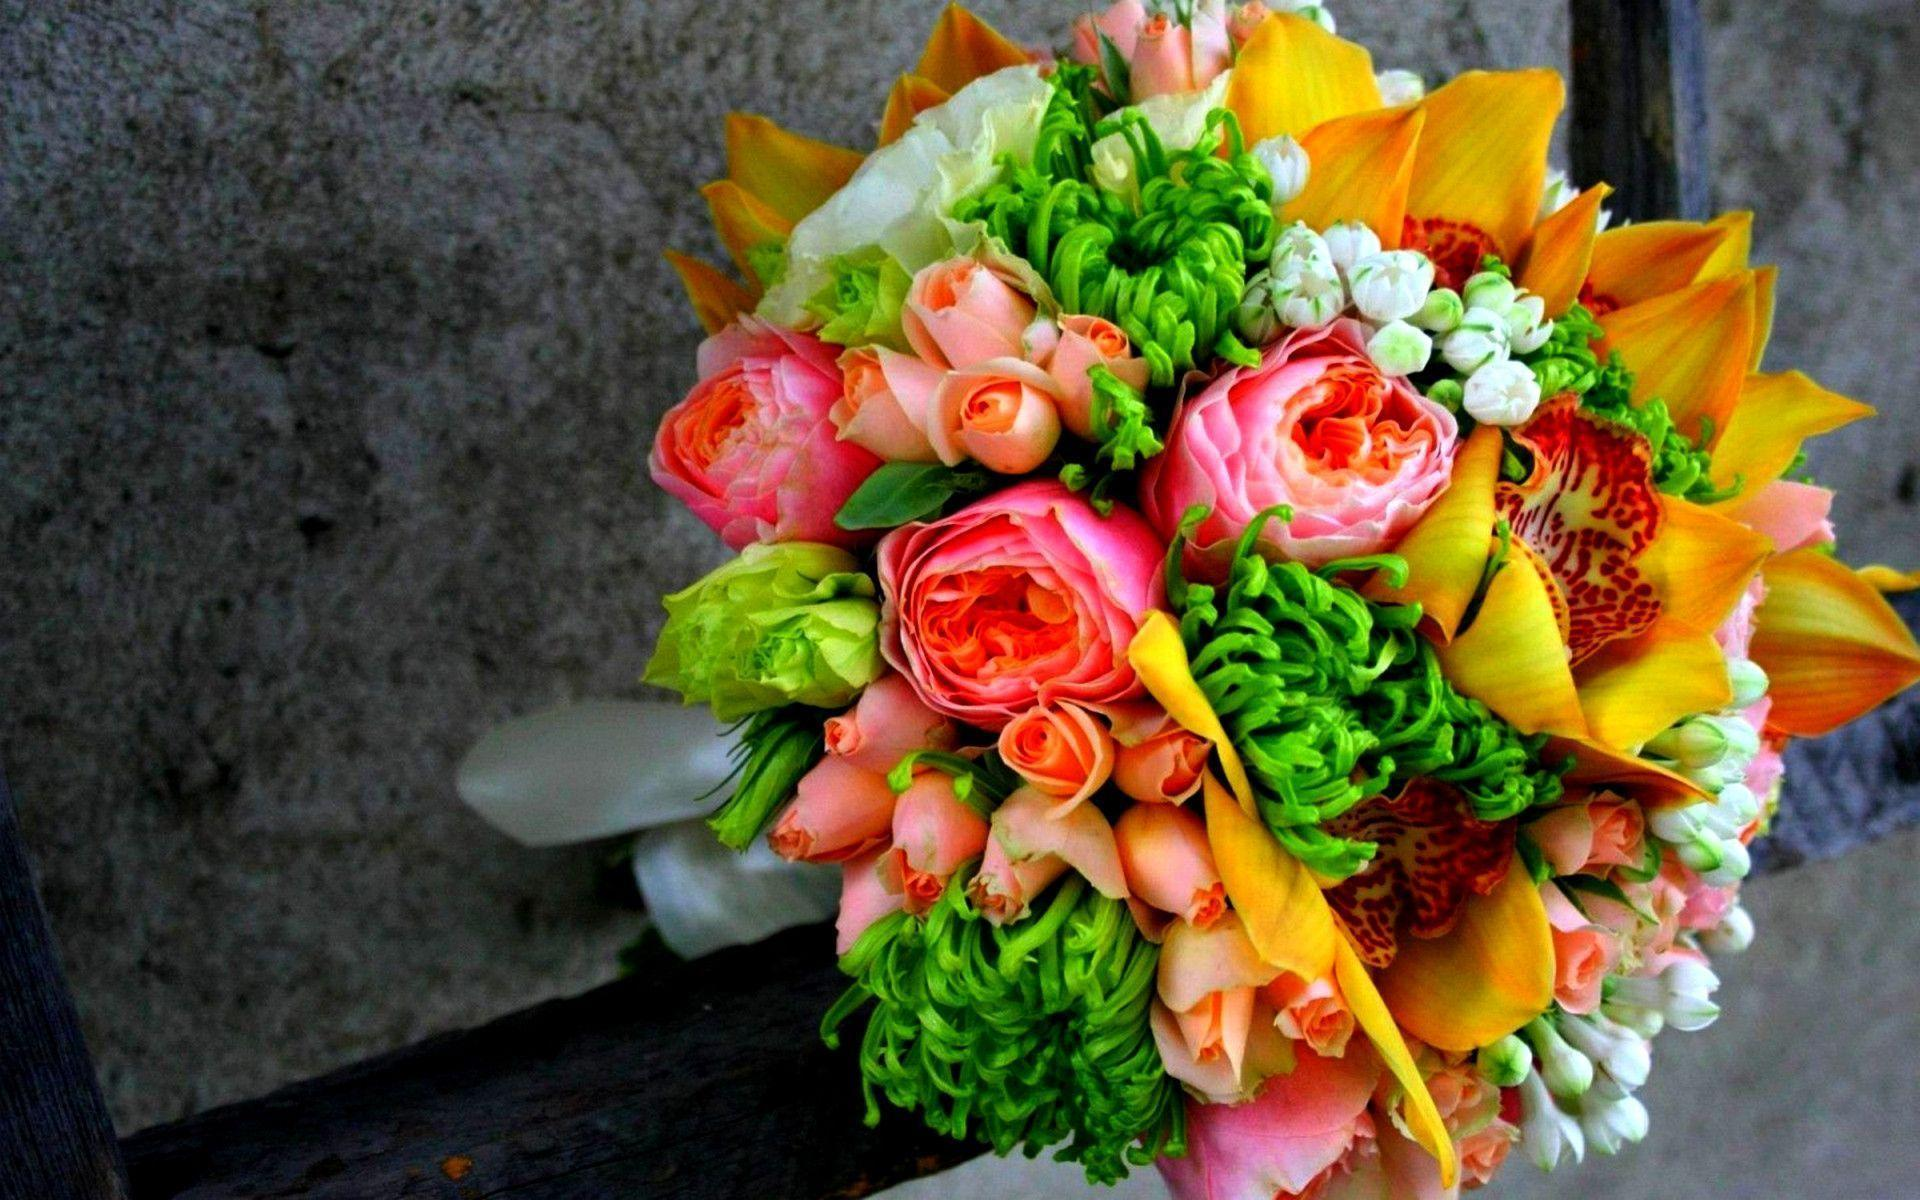 Flower Bouquet Wallpapers Wallpaper Cave